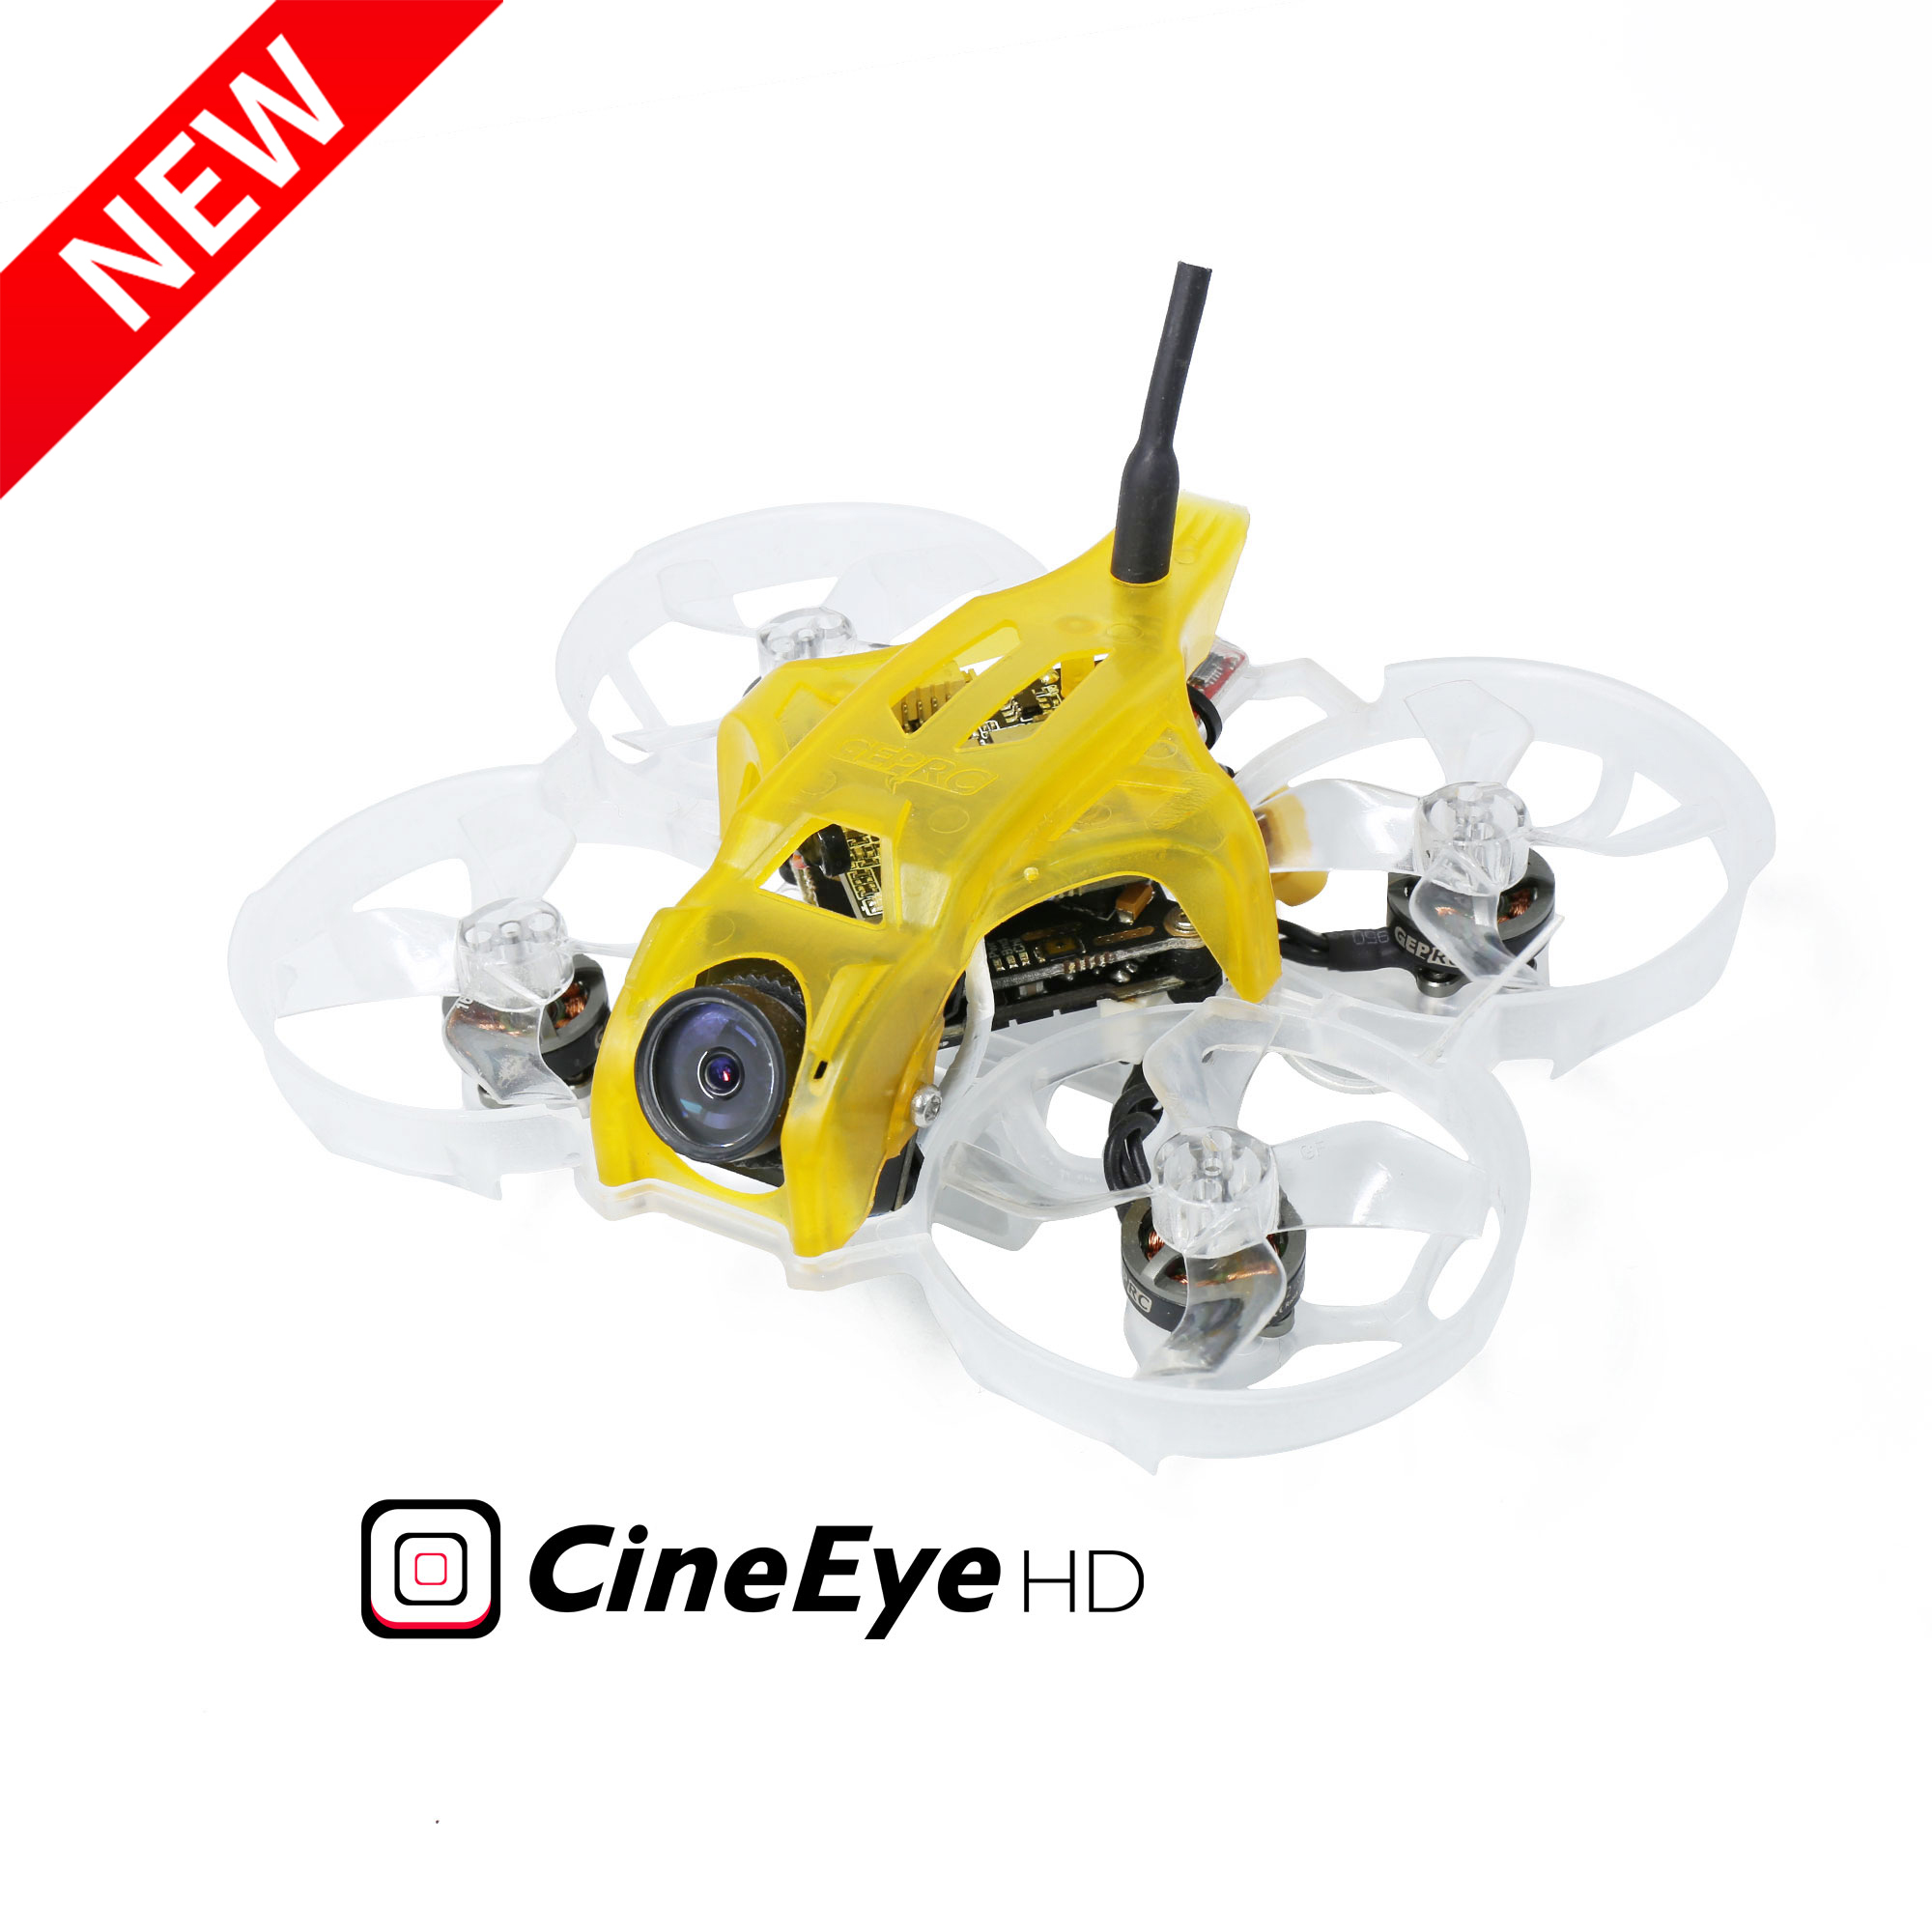 New GEPRC CineEye HD CineWhoop 2-4S FPV Racing Drone PNP BNF with Caddx Baby Turtle V2 Camera <font><b>1102</b></font> <font><b>Motor</b></font> GEP-12A-F4 FC image